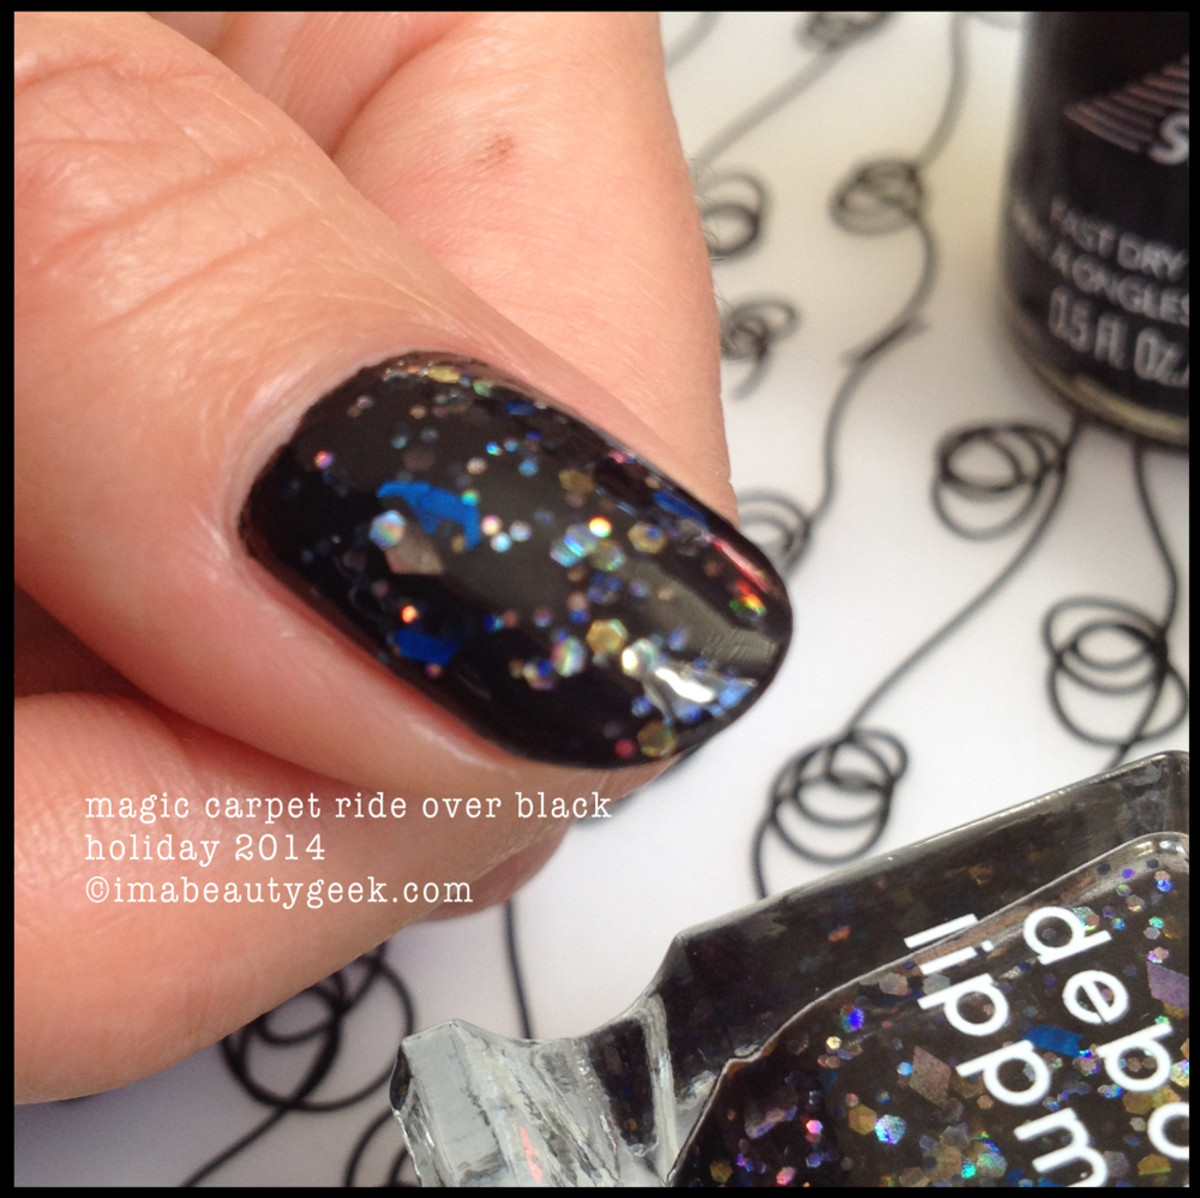 Deborah Lippmann Fantastical Holiday 2014 Magic Carpet Ride Holo Bits